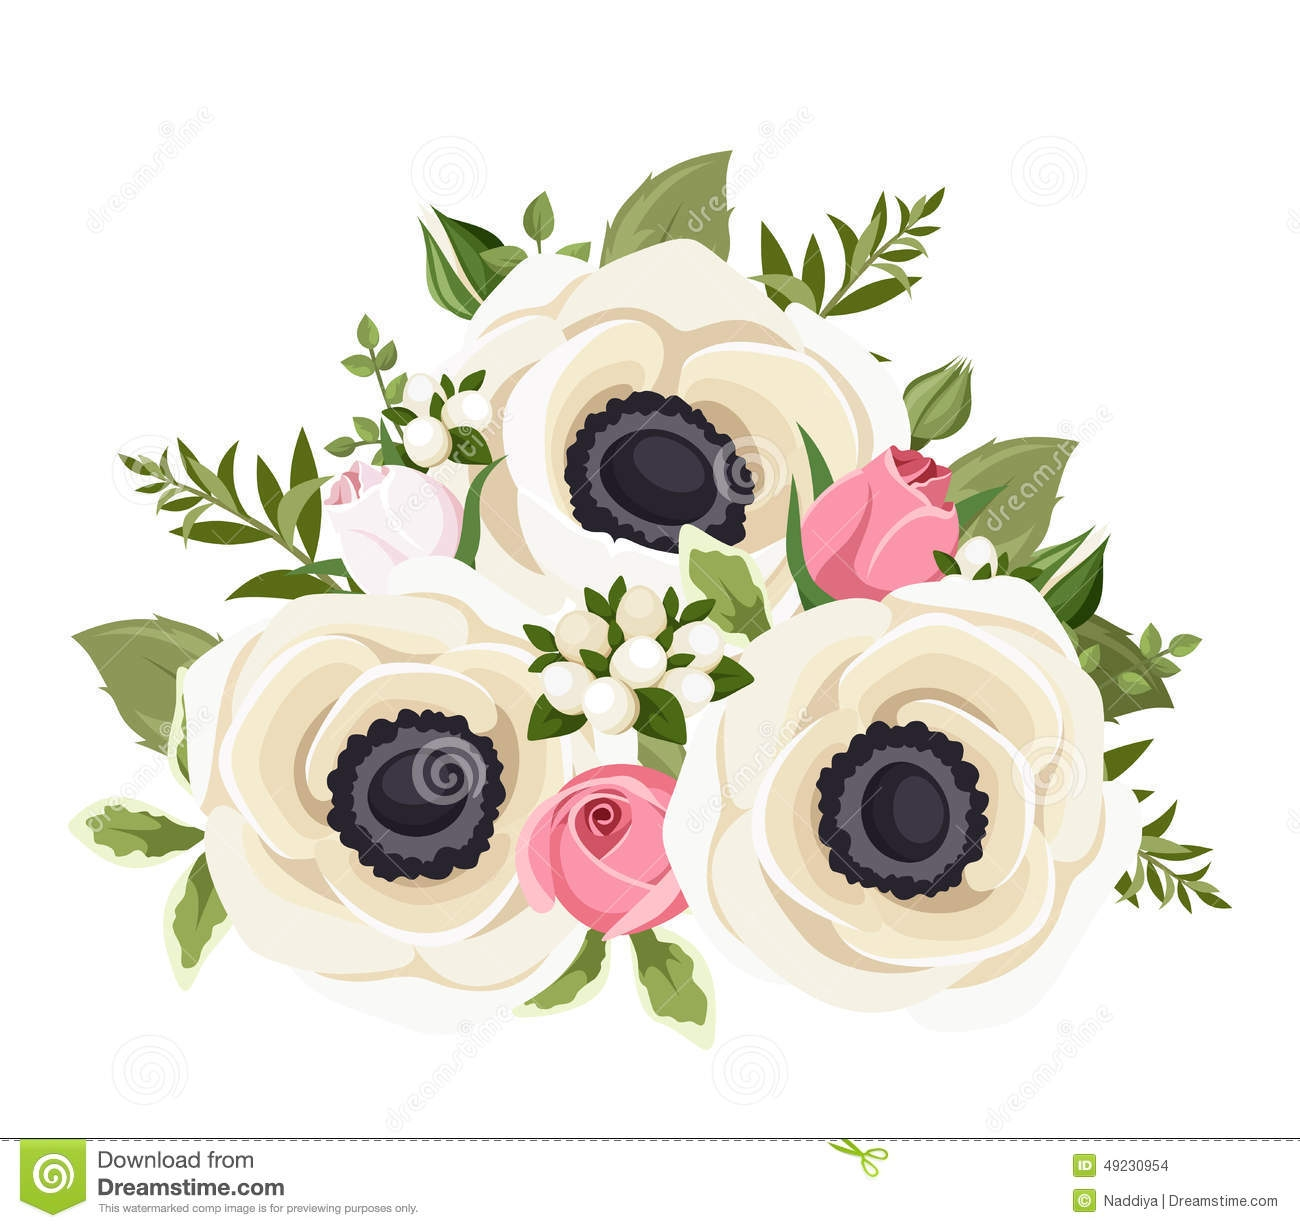 Anemone Flower Clipart.